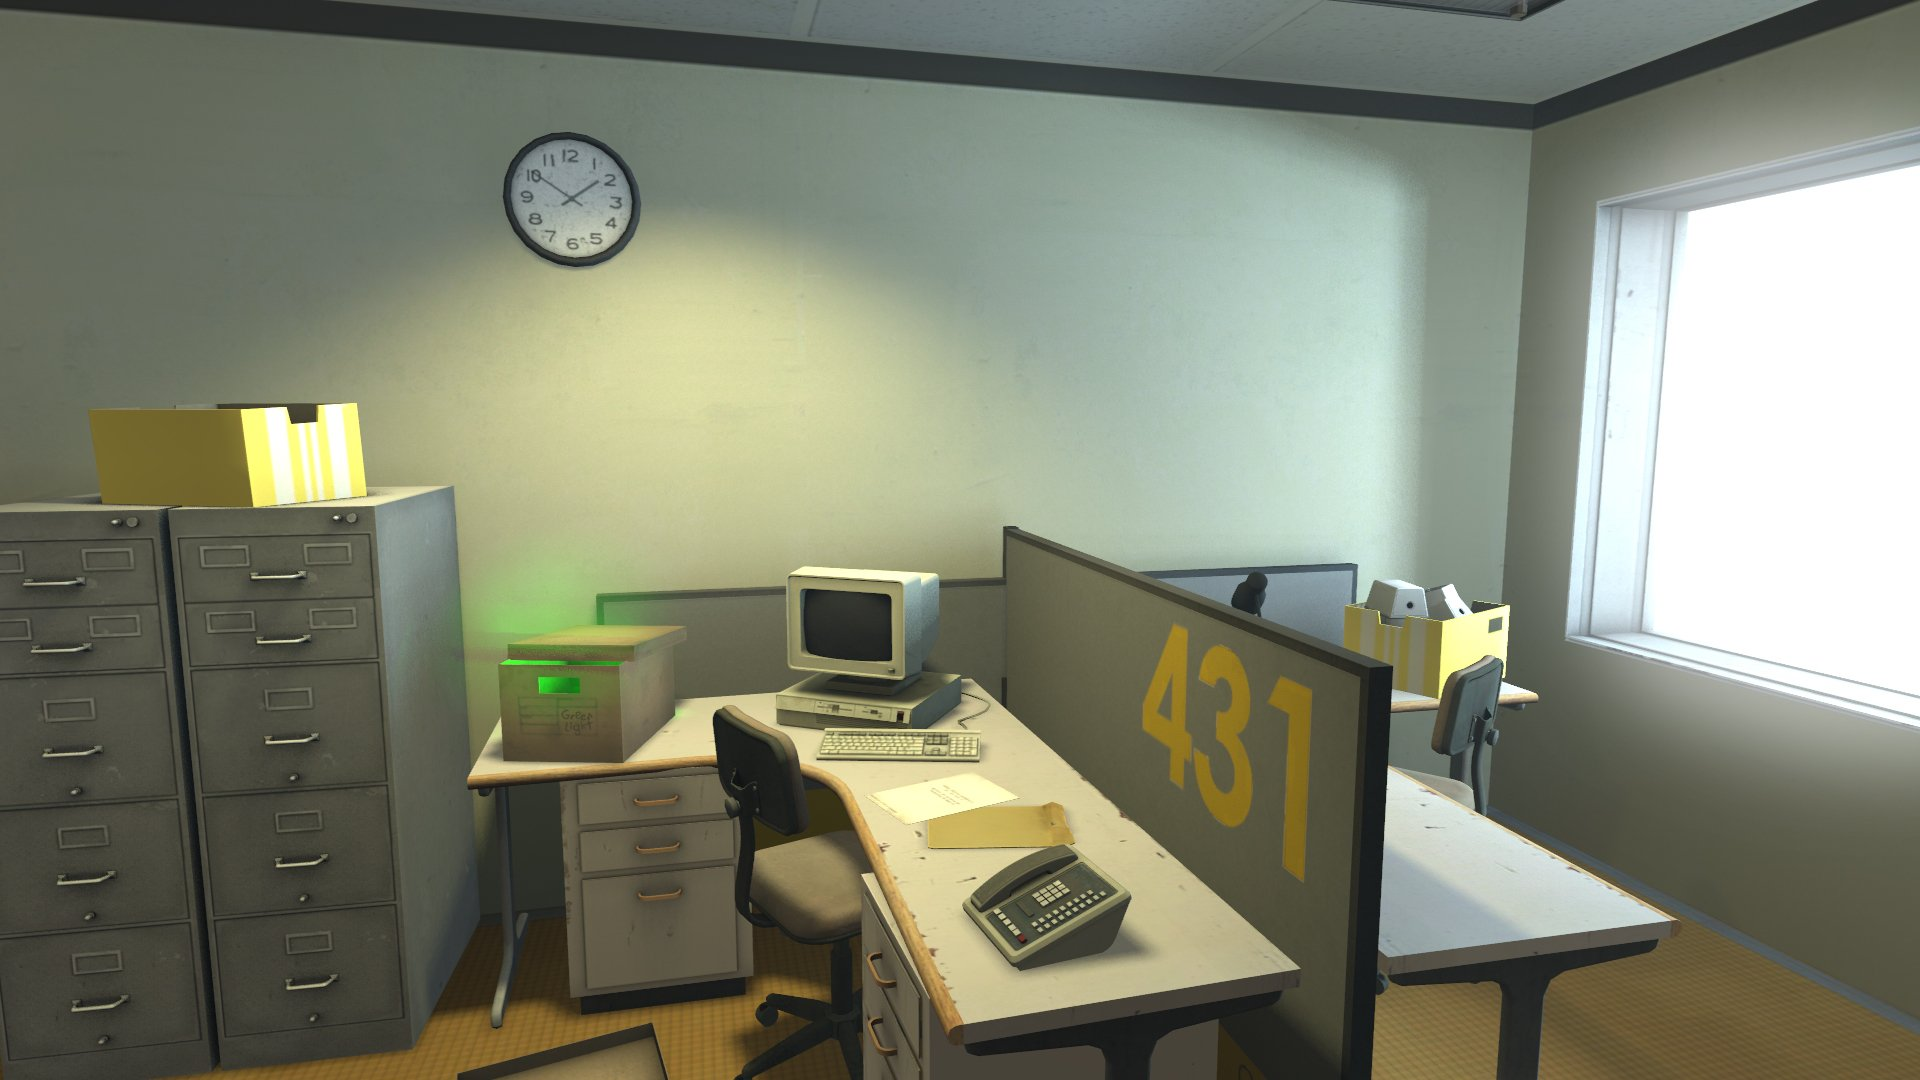 The Stanley Parable is free on the Epic Games Store next week